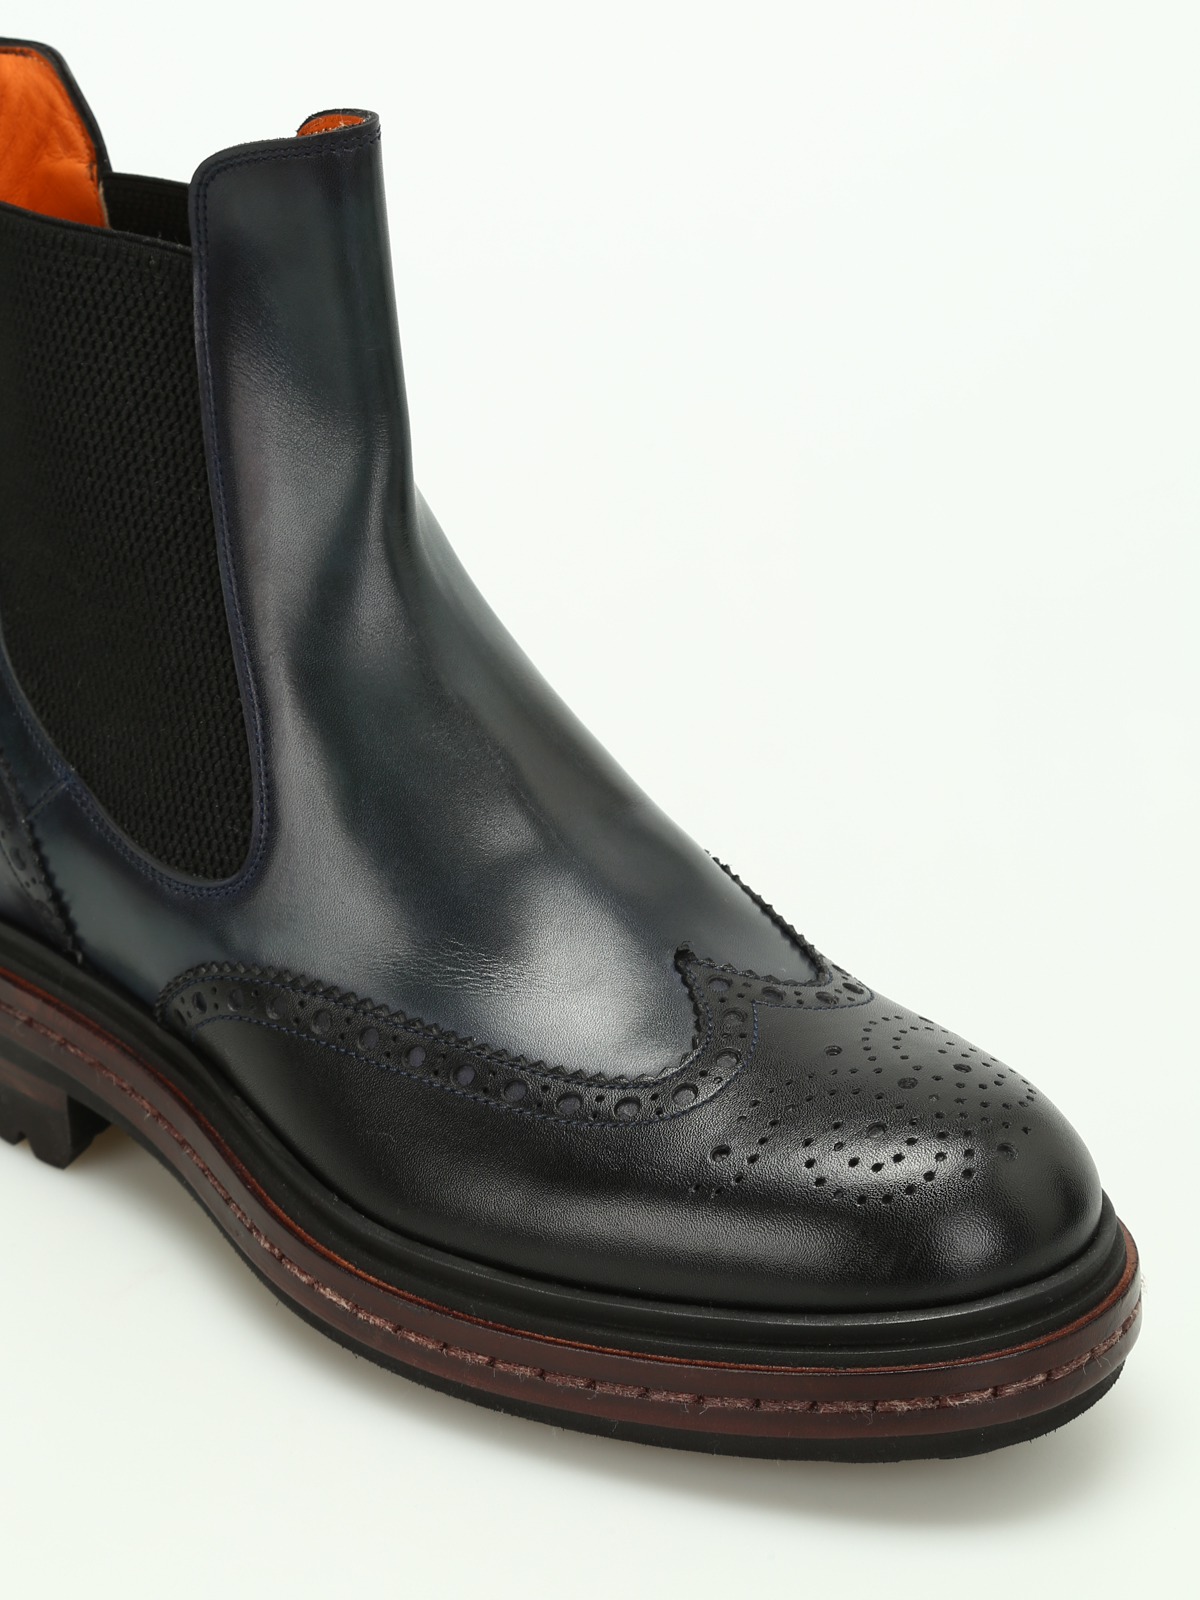 ffeac953515b0d iKRIX SANTONI  ankle boots - Two-tone leather Chelsea boots